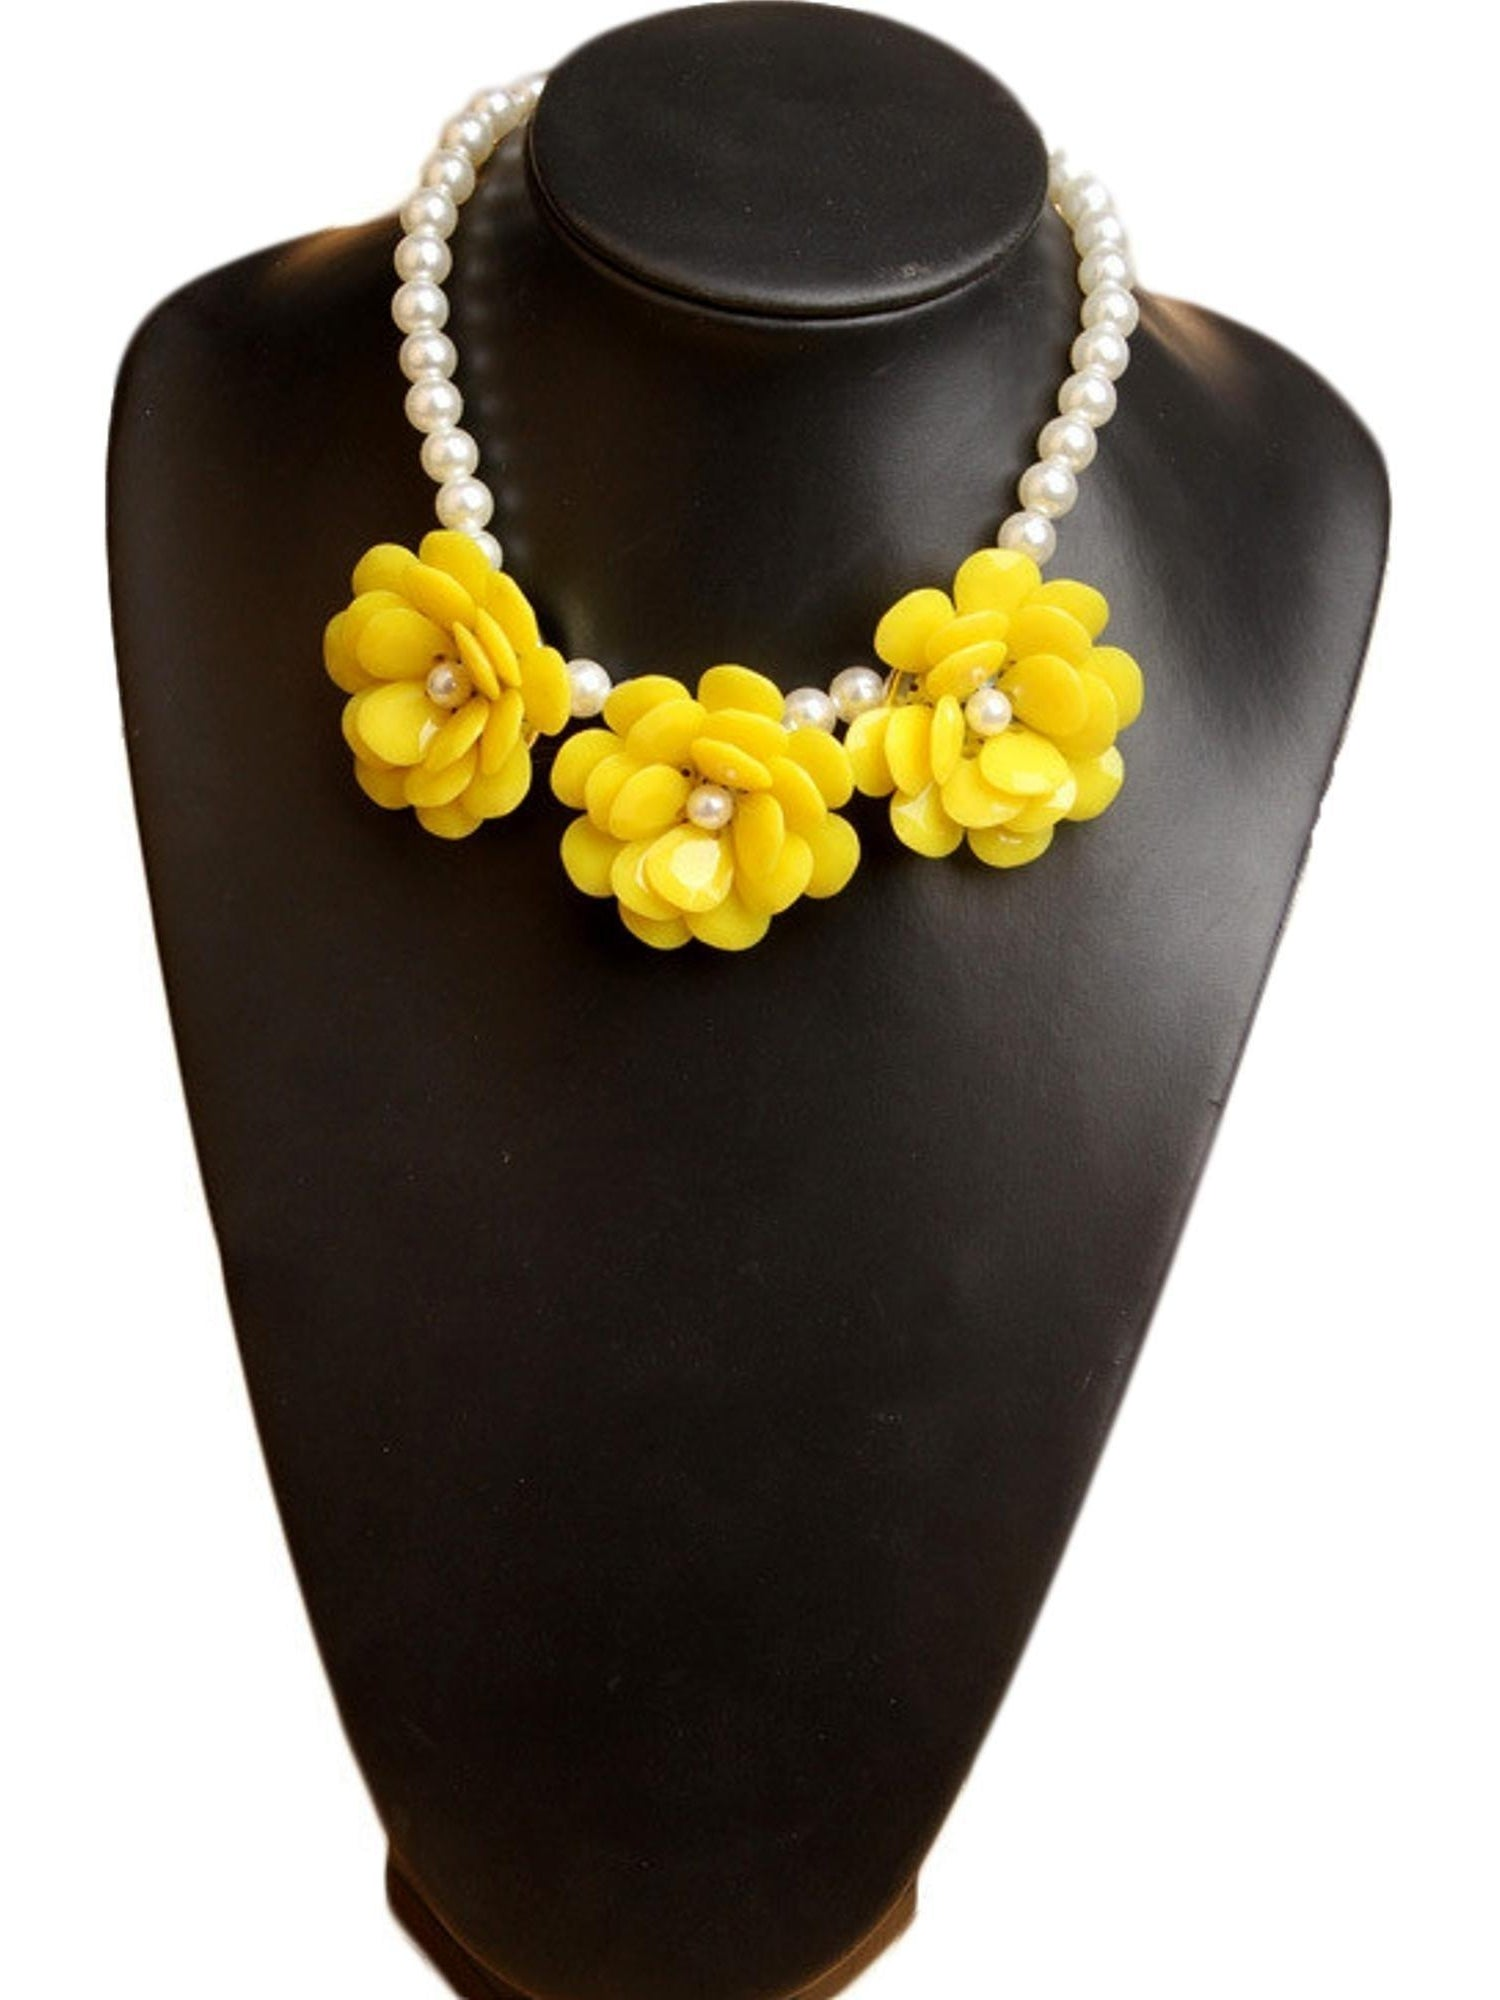 Girls trendy flower necklace yellow girls trendy flower necklace yellow girls jewelry dekoposh os yellow mightylinksfo Choice Image